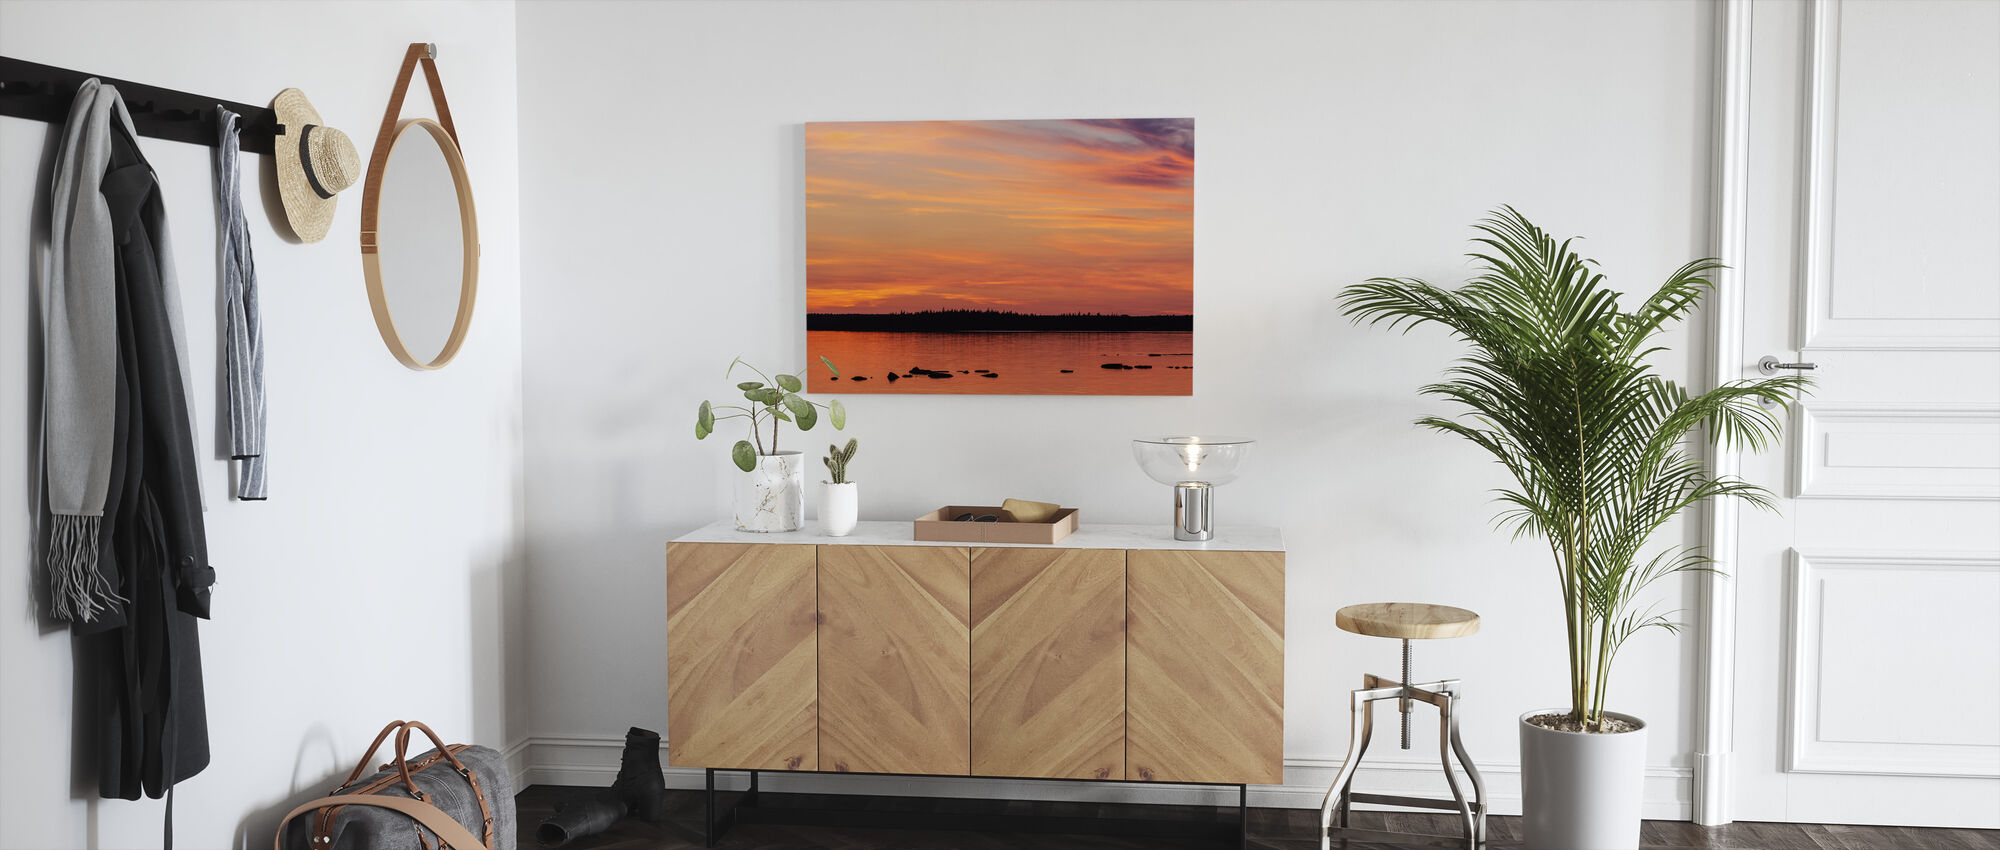 Sunset, Gotland - Canvas print - Hallway